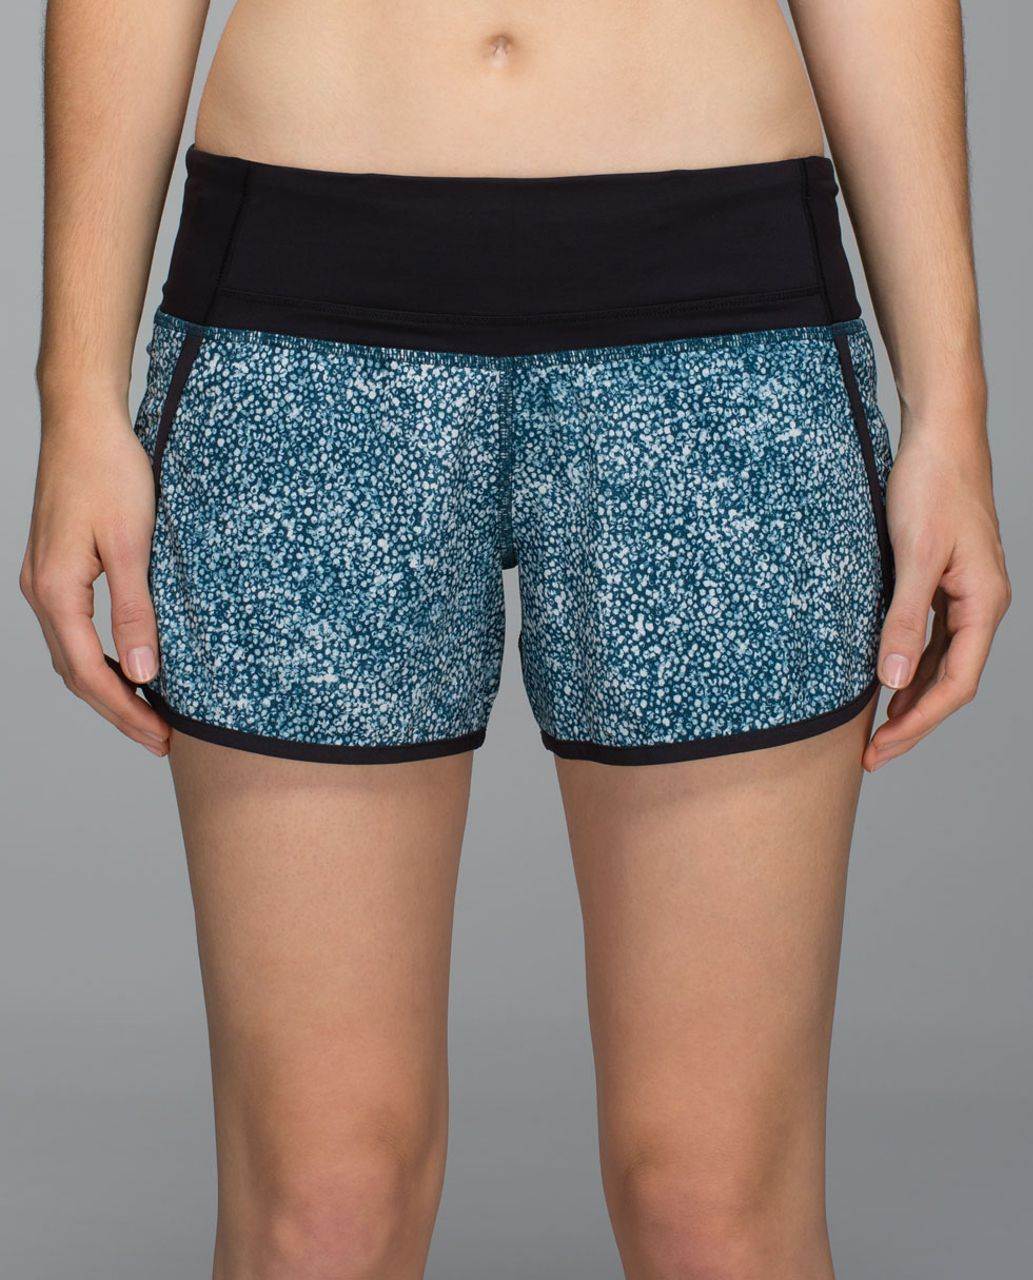 Lululemon Run Times Short *4-way Stretch - Pebble Print Parfait Pink Alberta Lake / Black